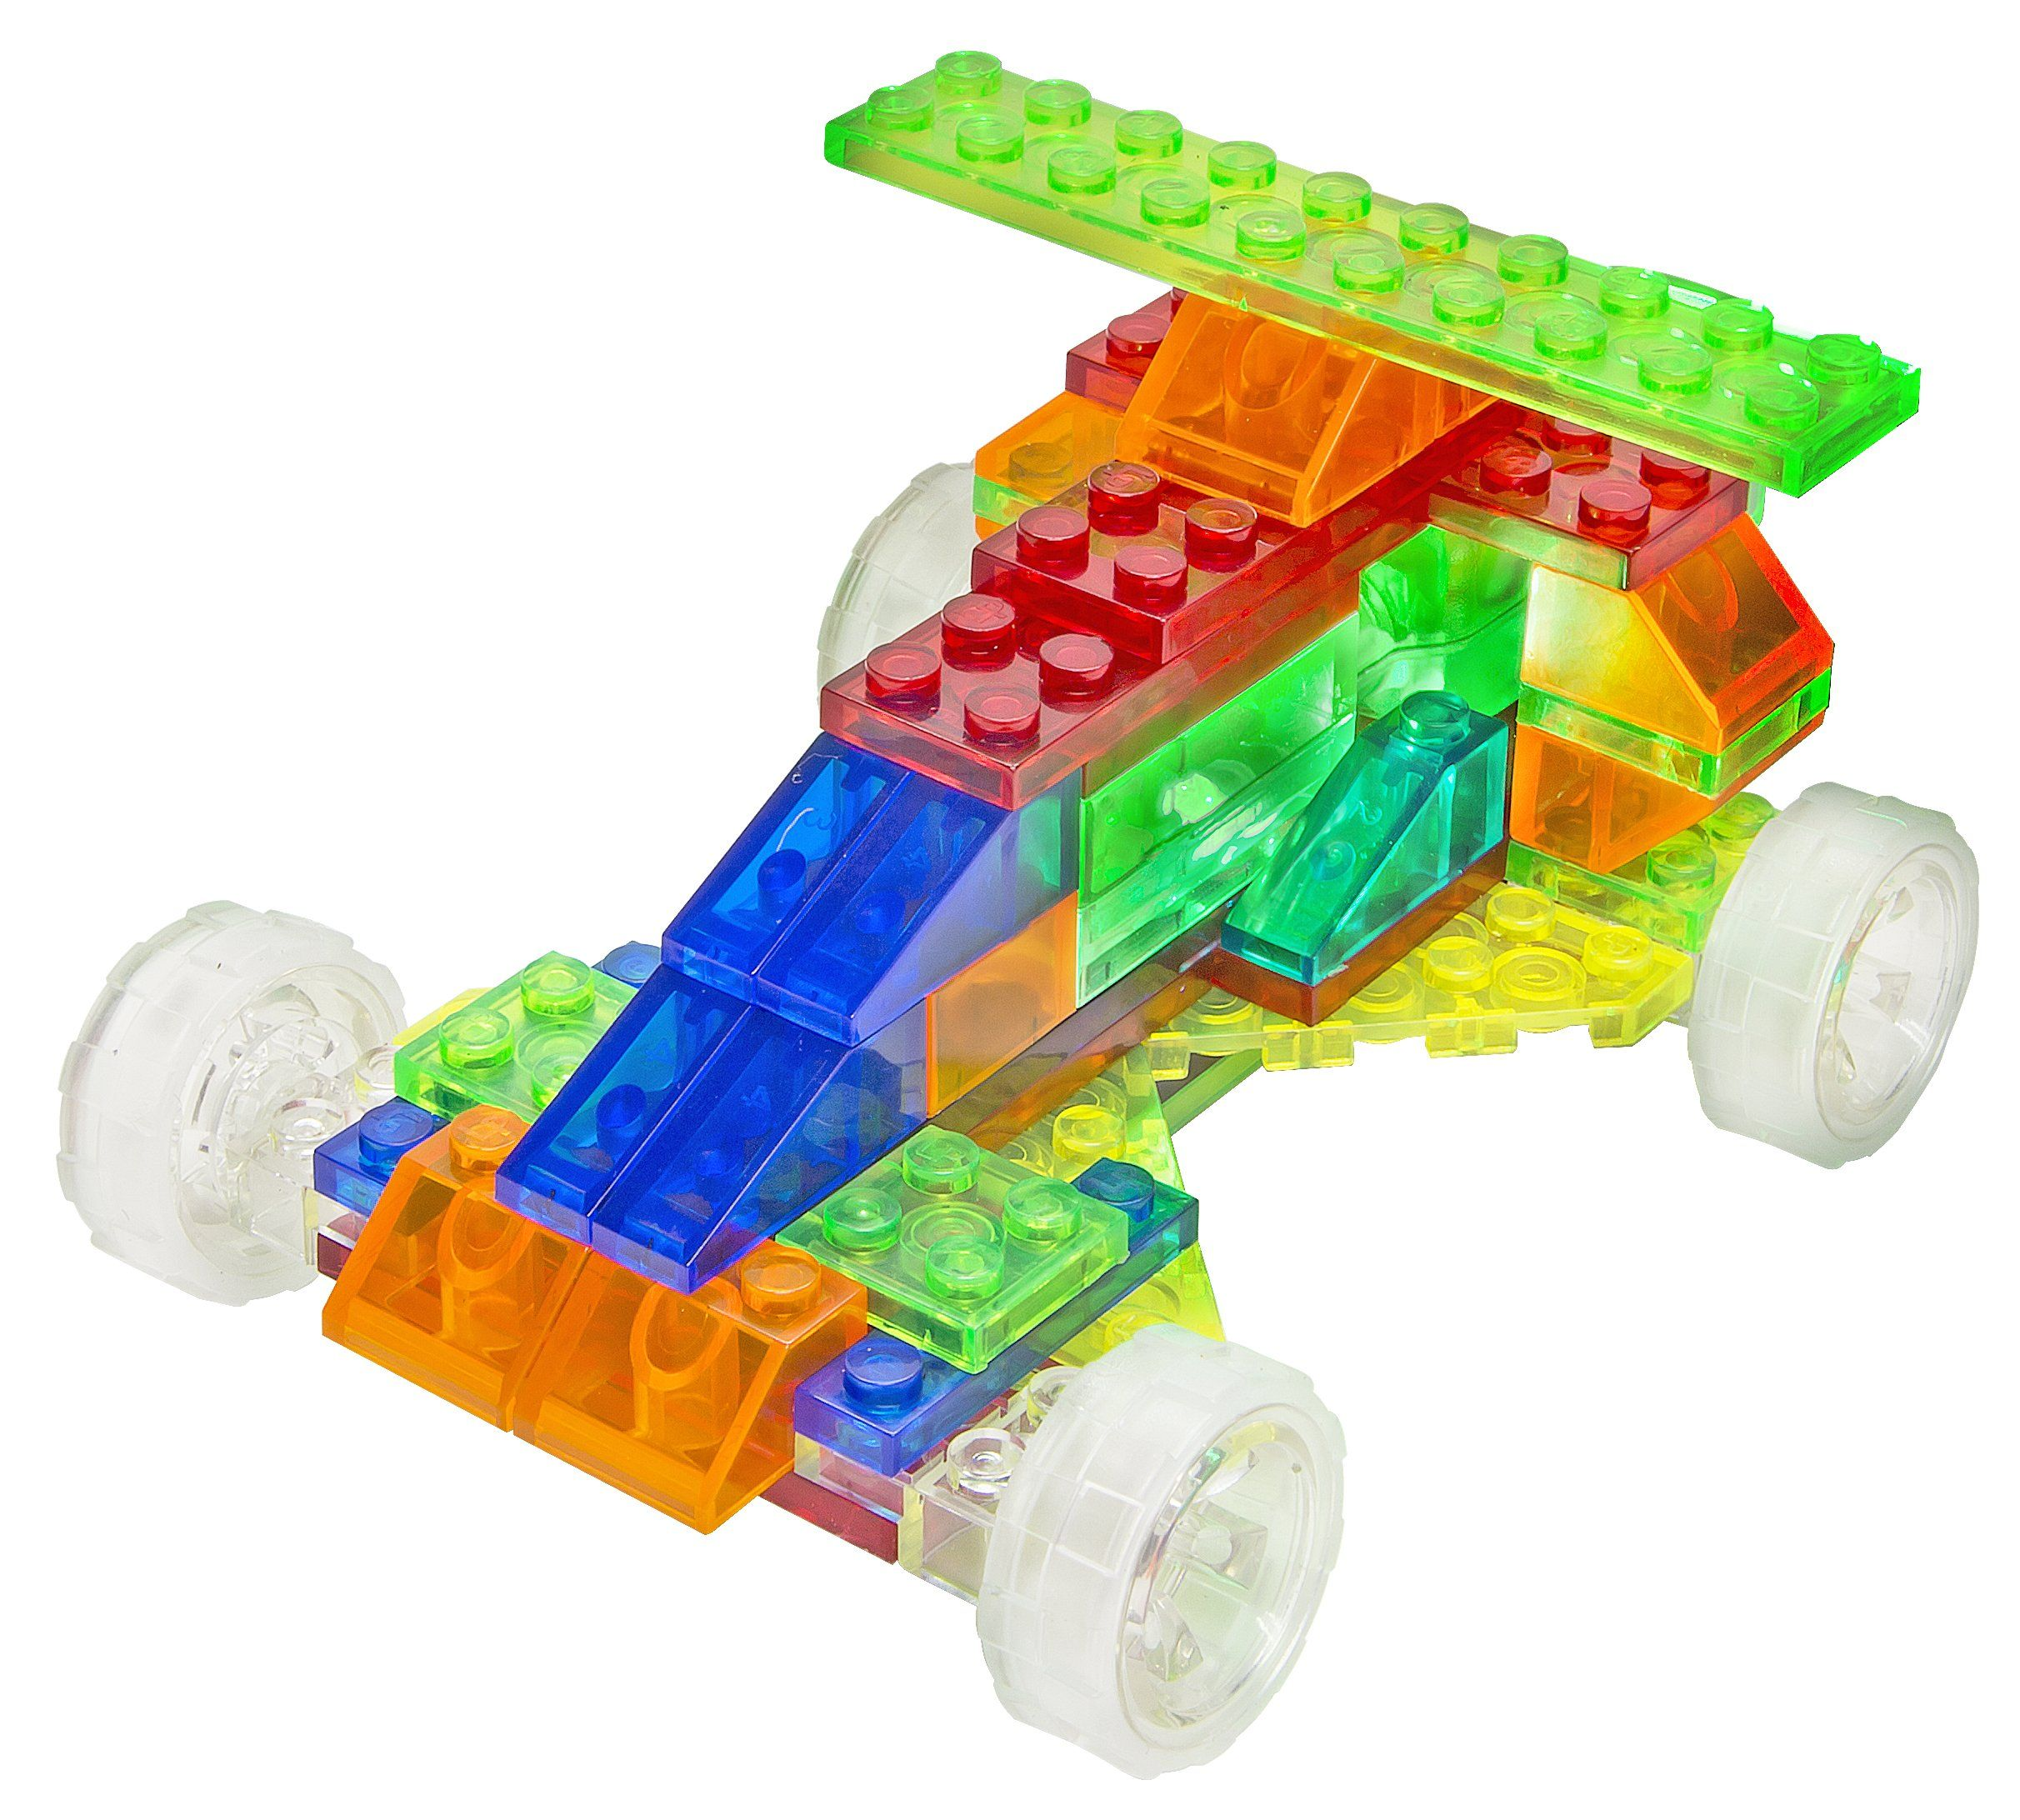 Laser Pegs 4in1 Cars Building Set * Want extra details